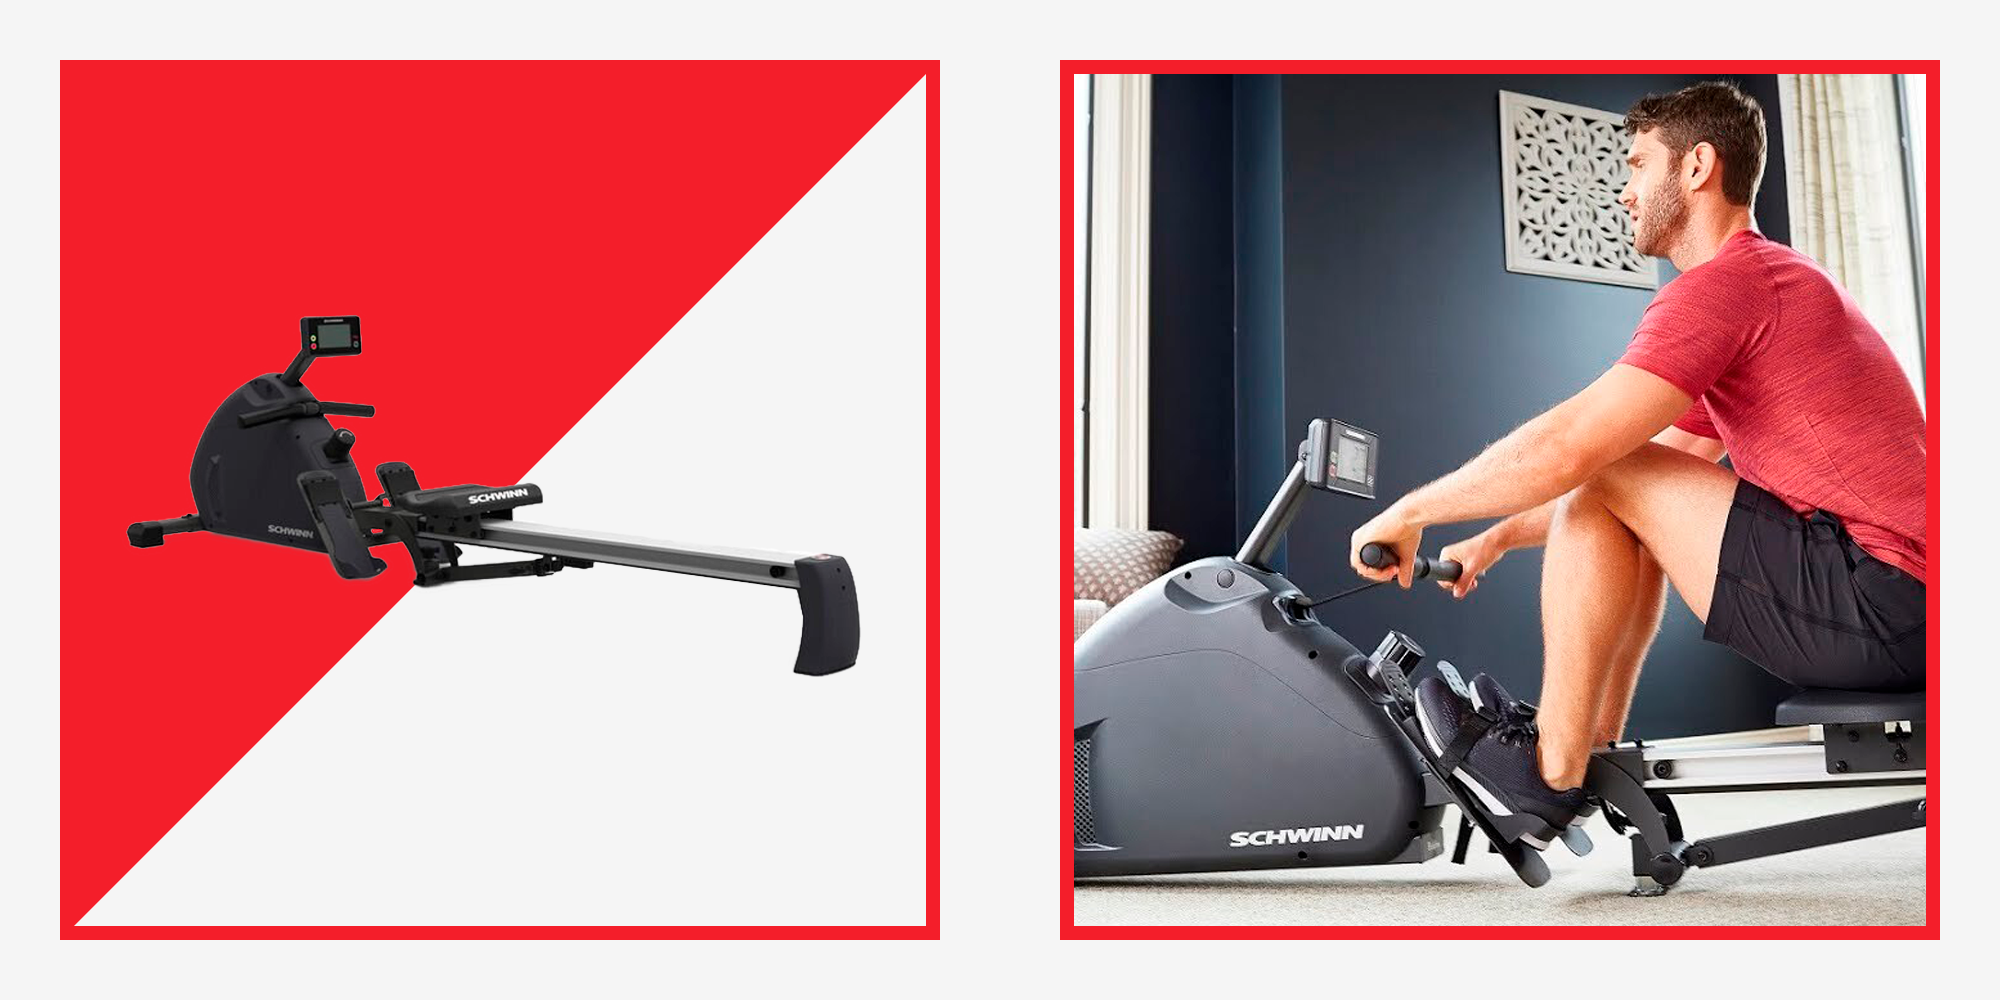 Amazon's Schwinn Rowing Machine Deal Is Almost Too Good to Be True